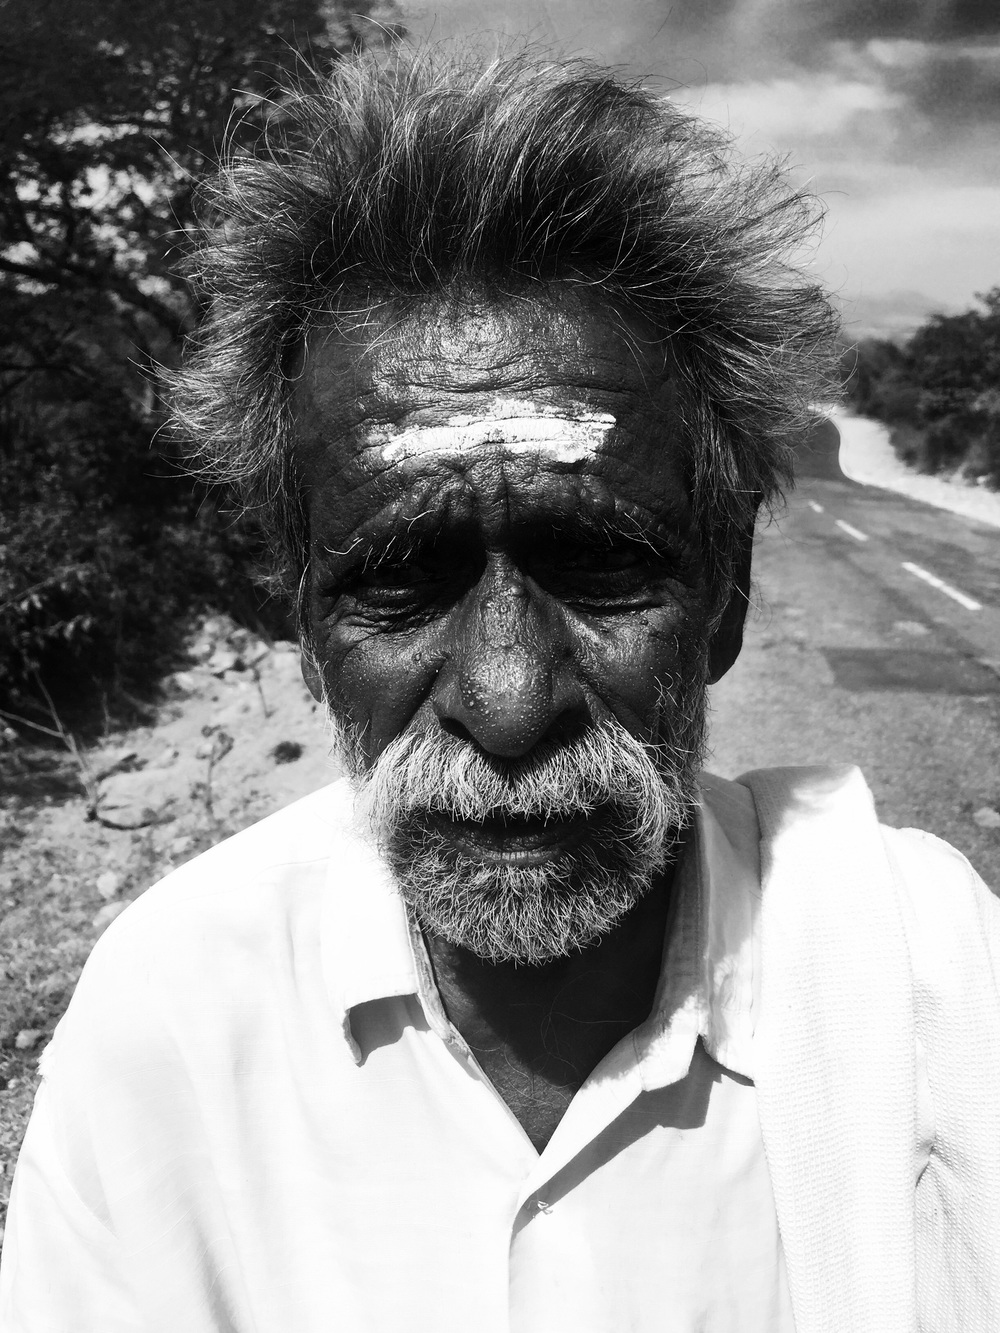 A man walking on the side of the road, barefoot. I wonder how far they've walked in the day?